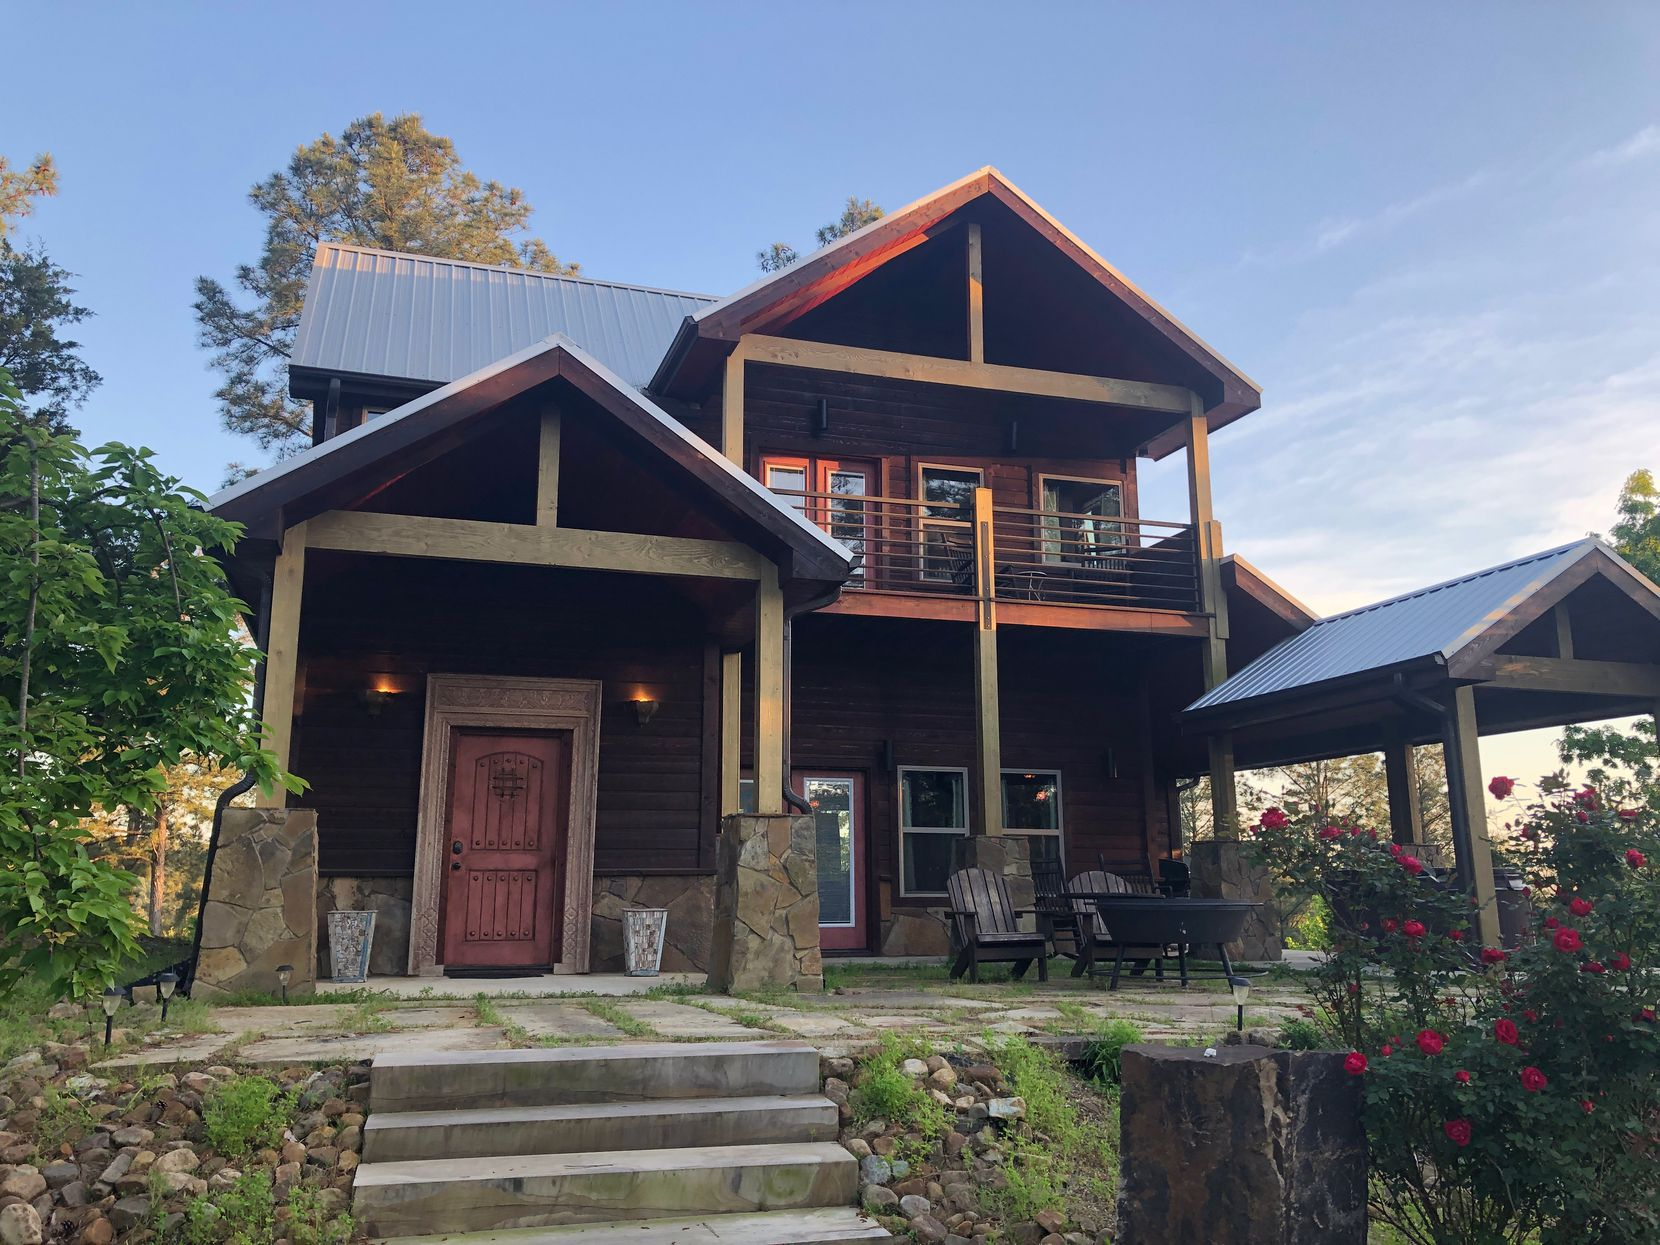 Broken Bow Cabin Lodging touts more than 100 luxury cabins only a short drive from Beavers Bend State Park featuring Broken Bow Lake, the Mountain Fork River, David Boren hiking trail and more.